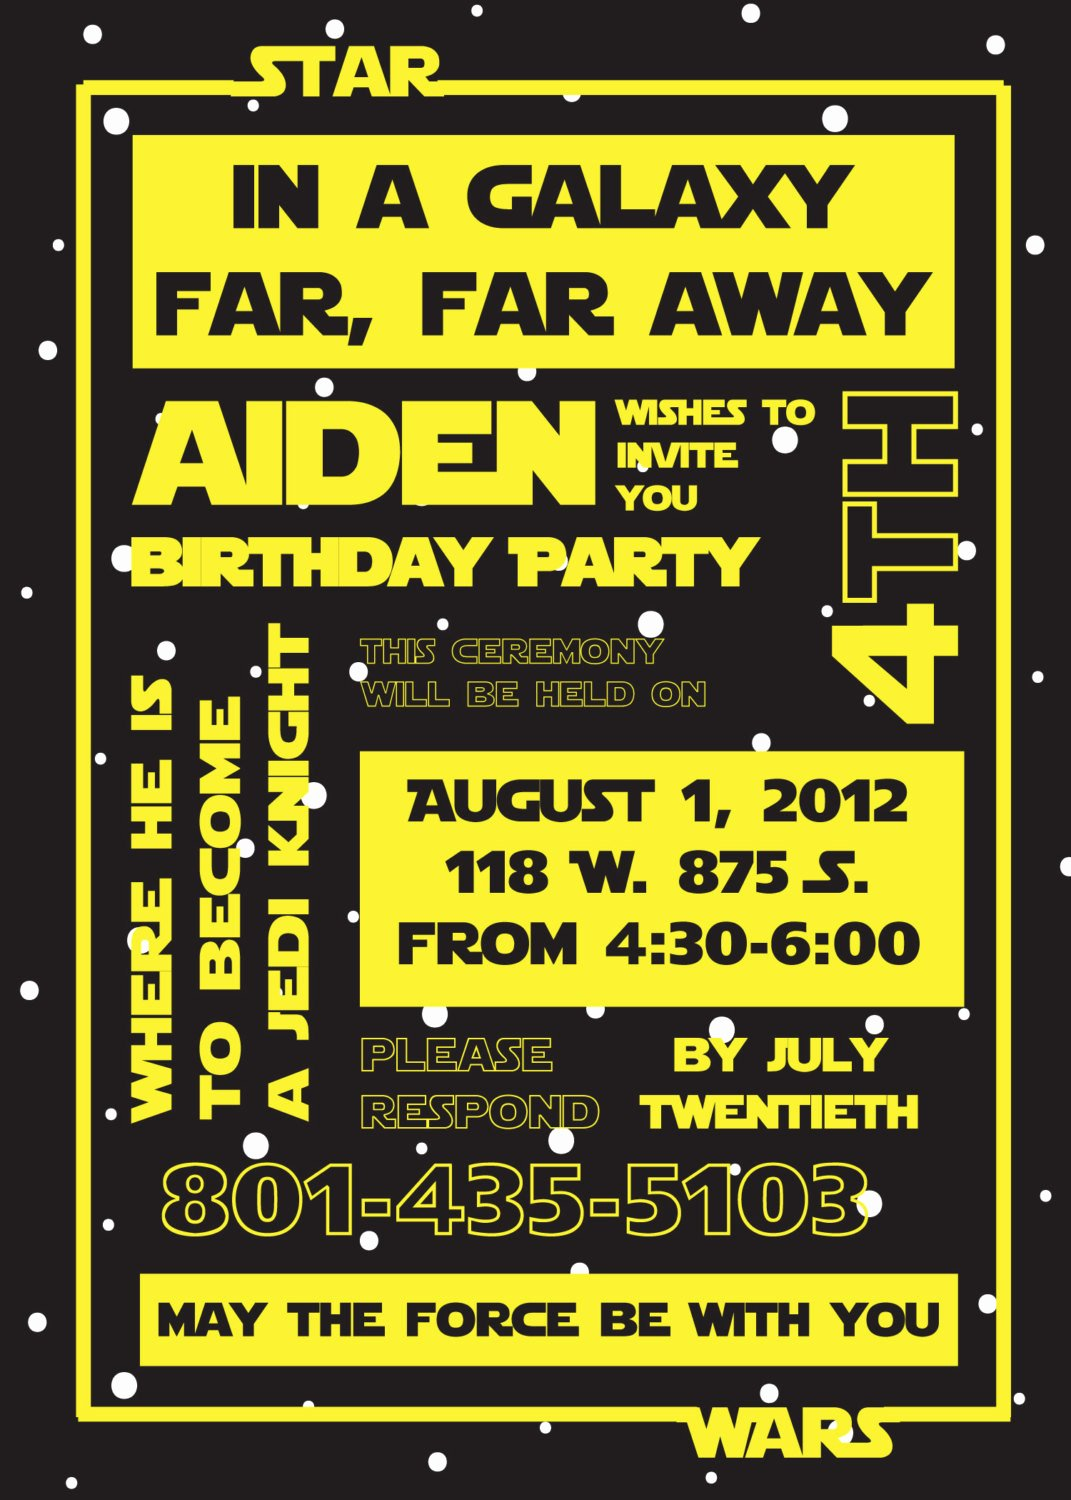 Star Wars Printable Birthday Invitations Fresh Printable Star Wars Invitation and Party Banner by Susieandme